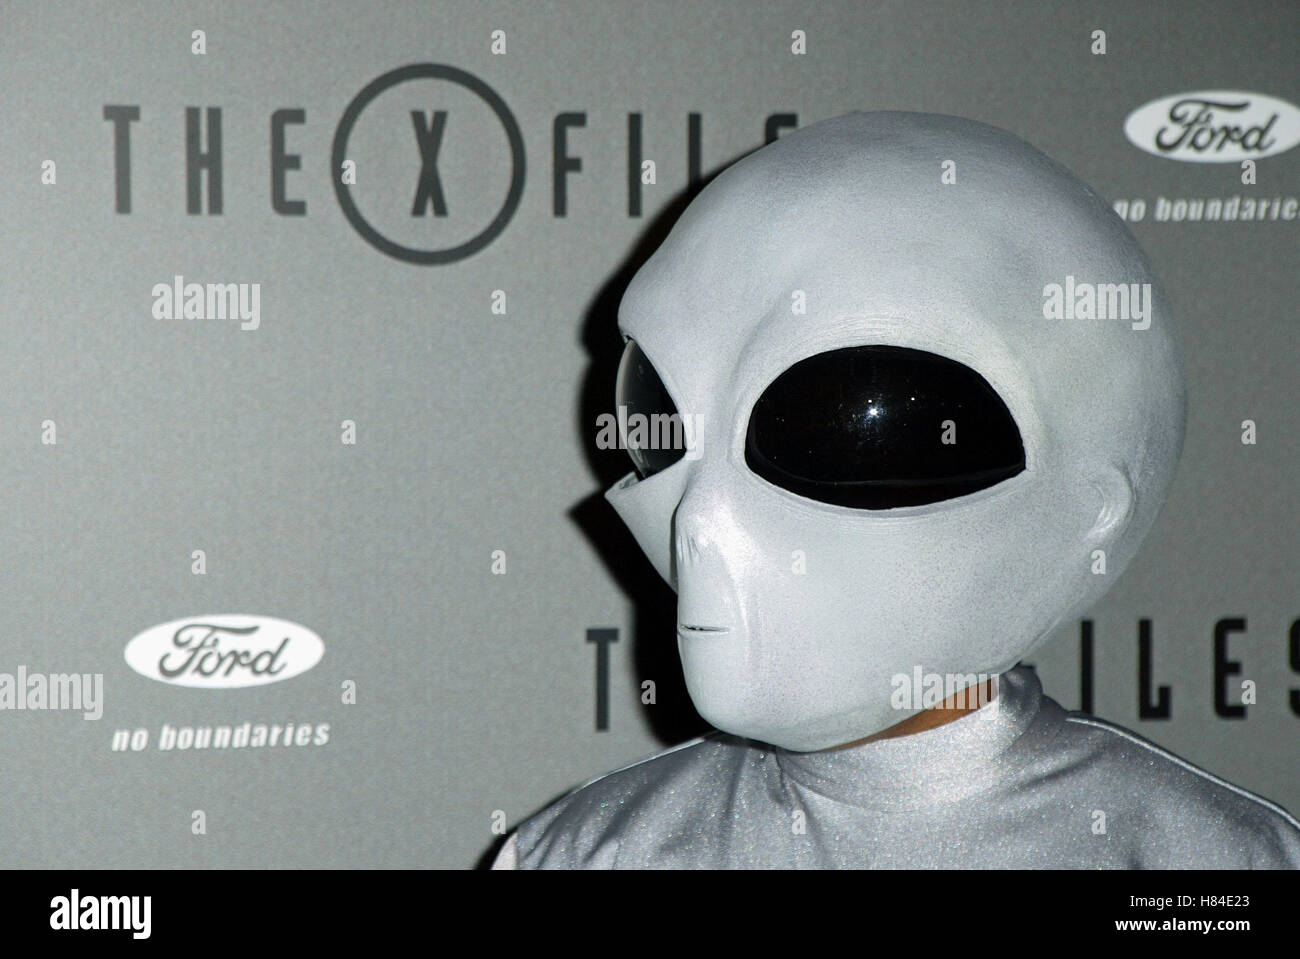 ALIEN X-FILES FINALE WARP PARTY HOUSE OF BLUES HOLLYWOOD LOS ANGELES USA 27 April 2002 - Stock Image